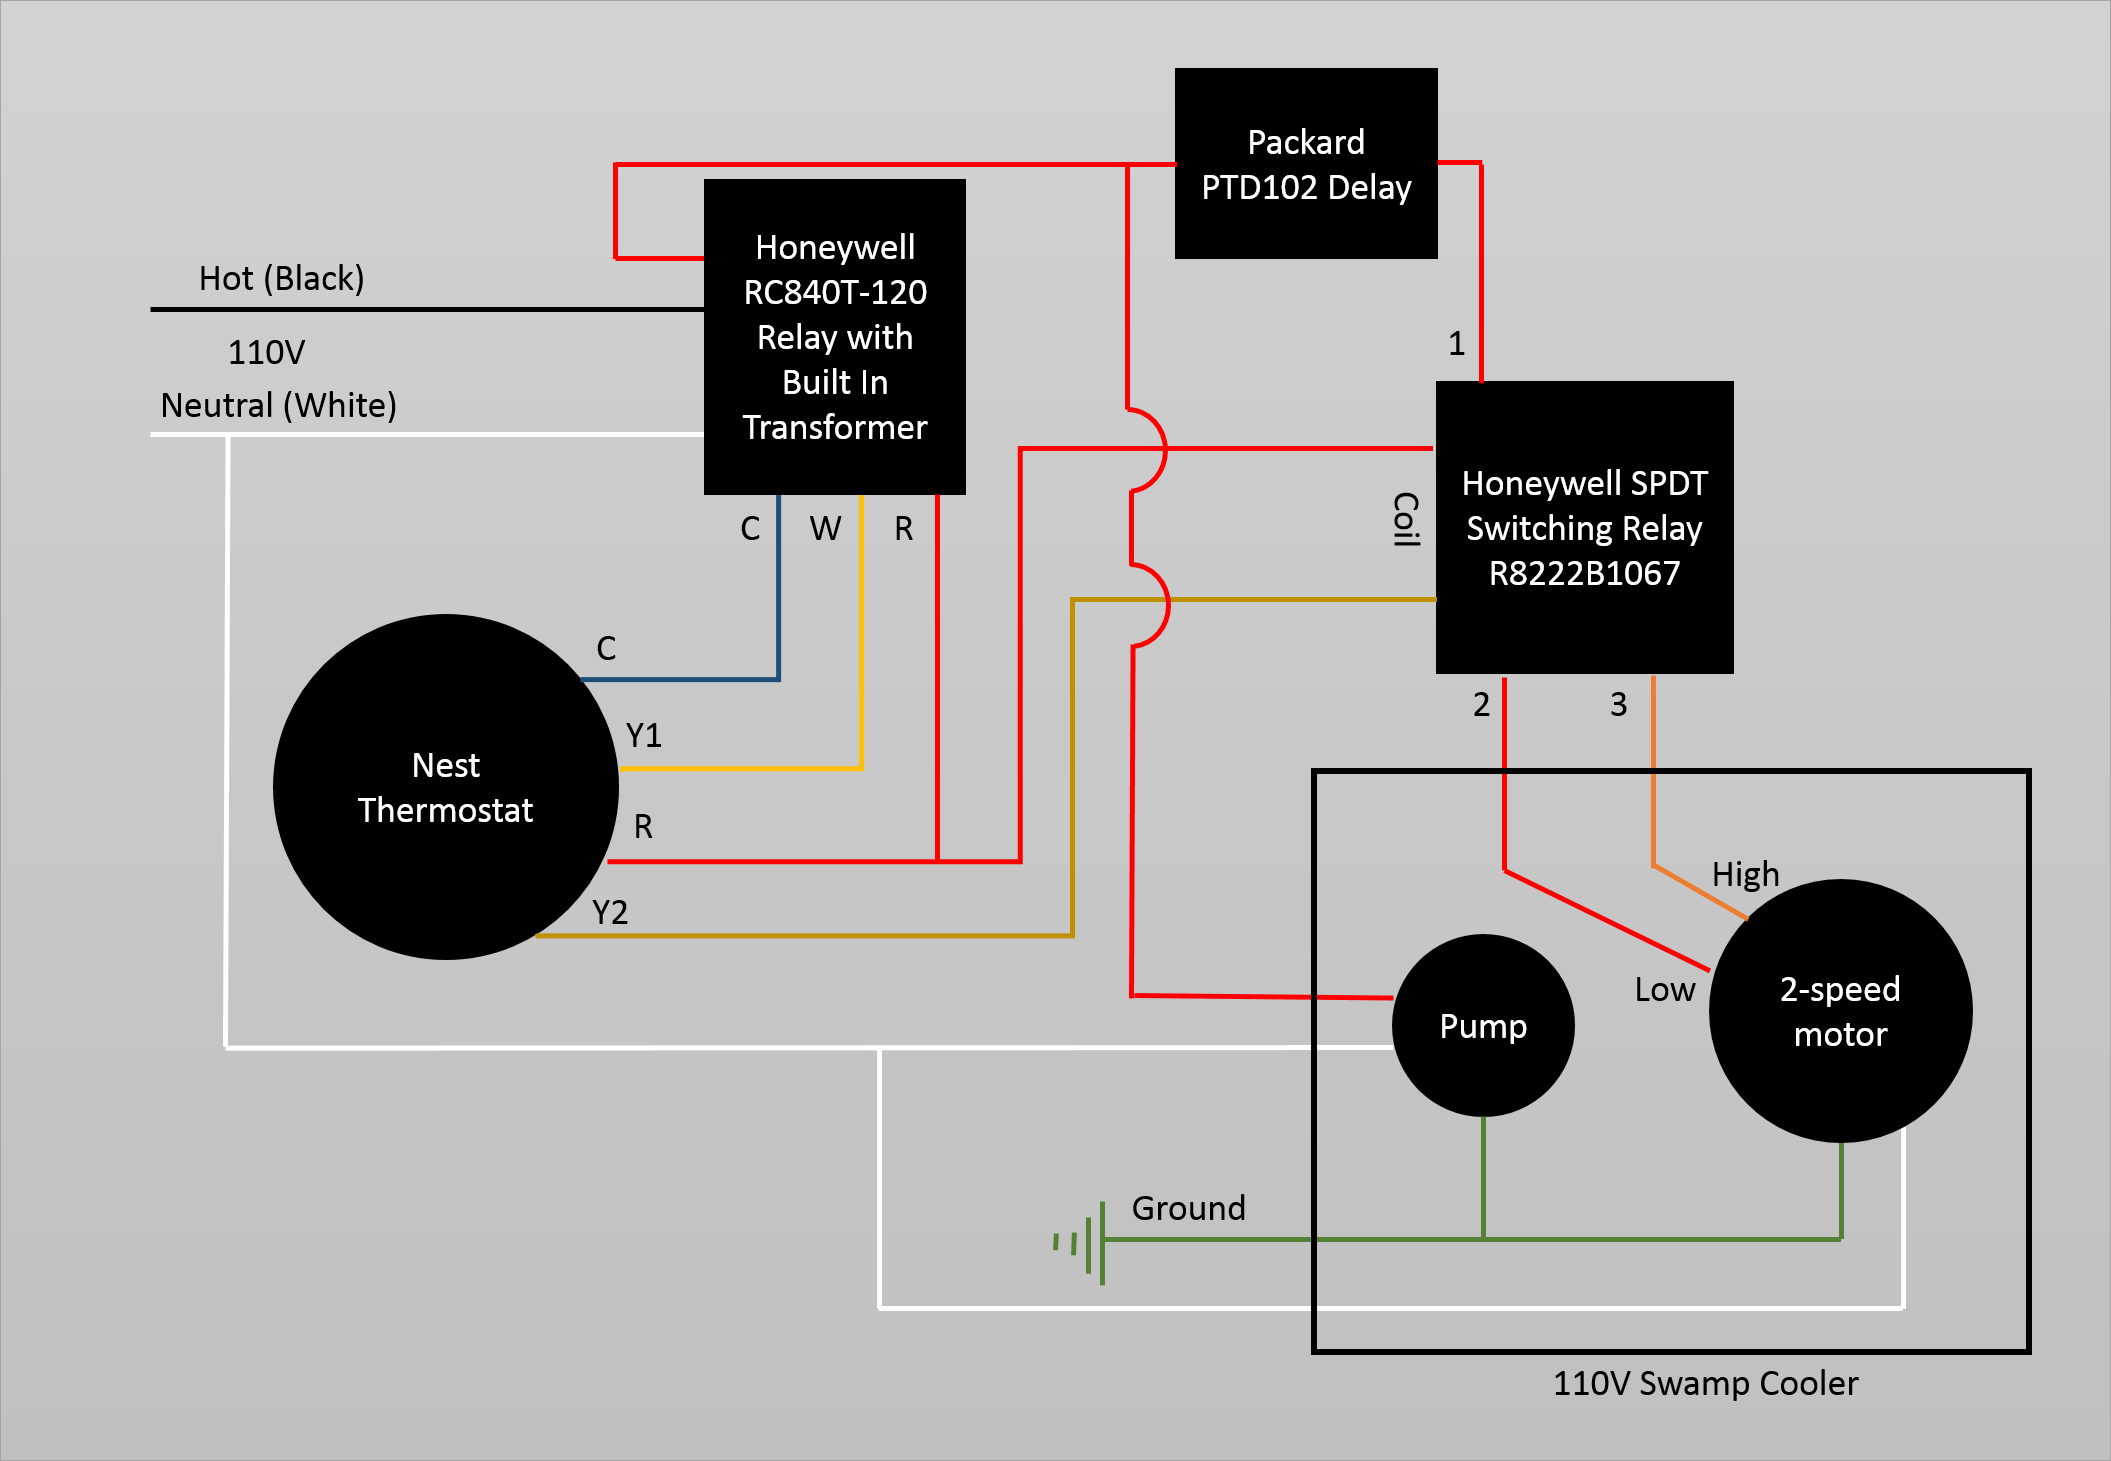 Wiring Diagram For Swamp Cooler | Wiring Library - Swamp Cooler Motor Wiring Diagram